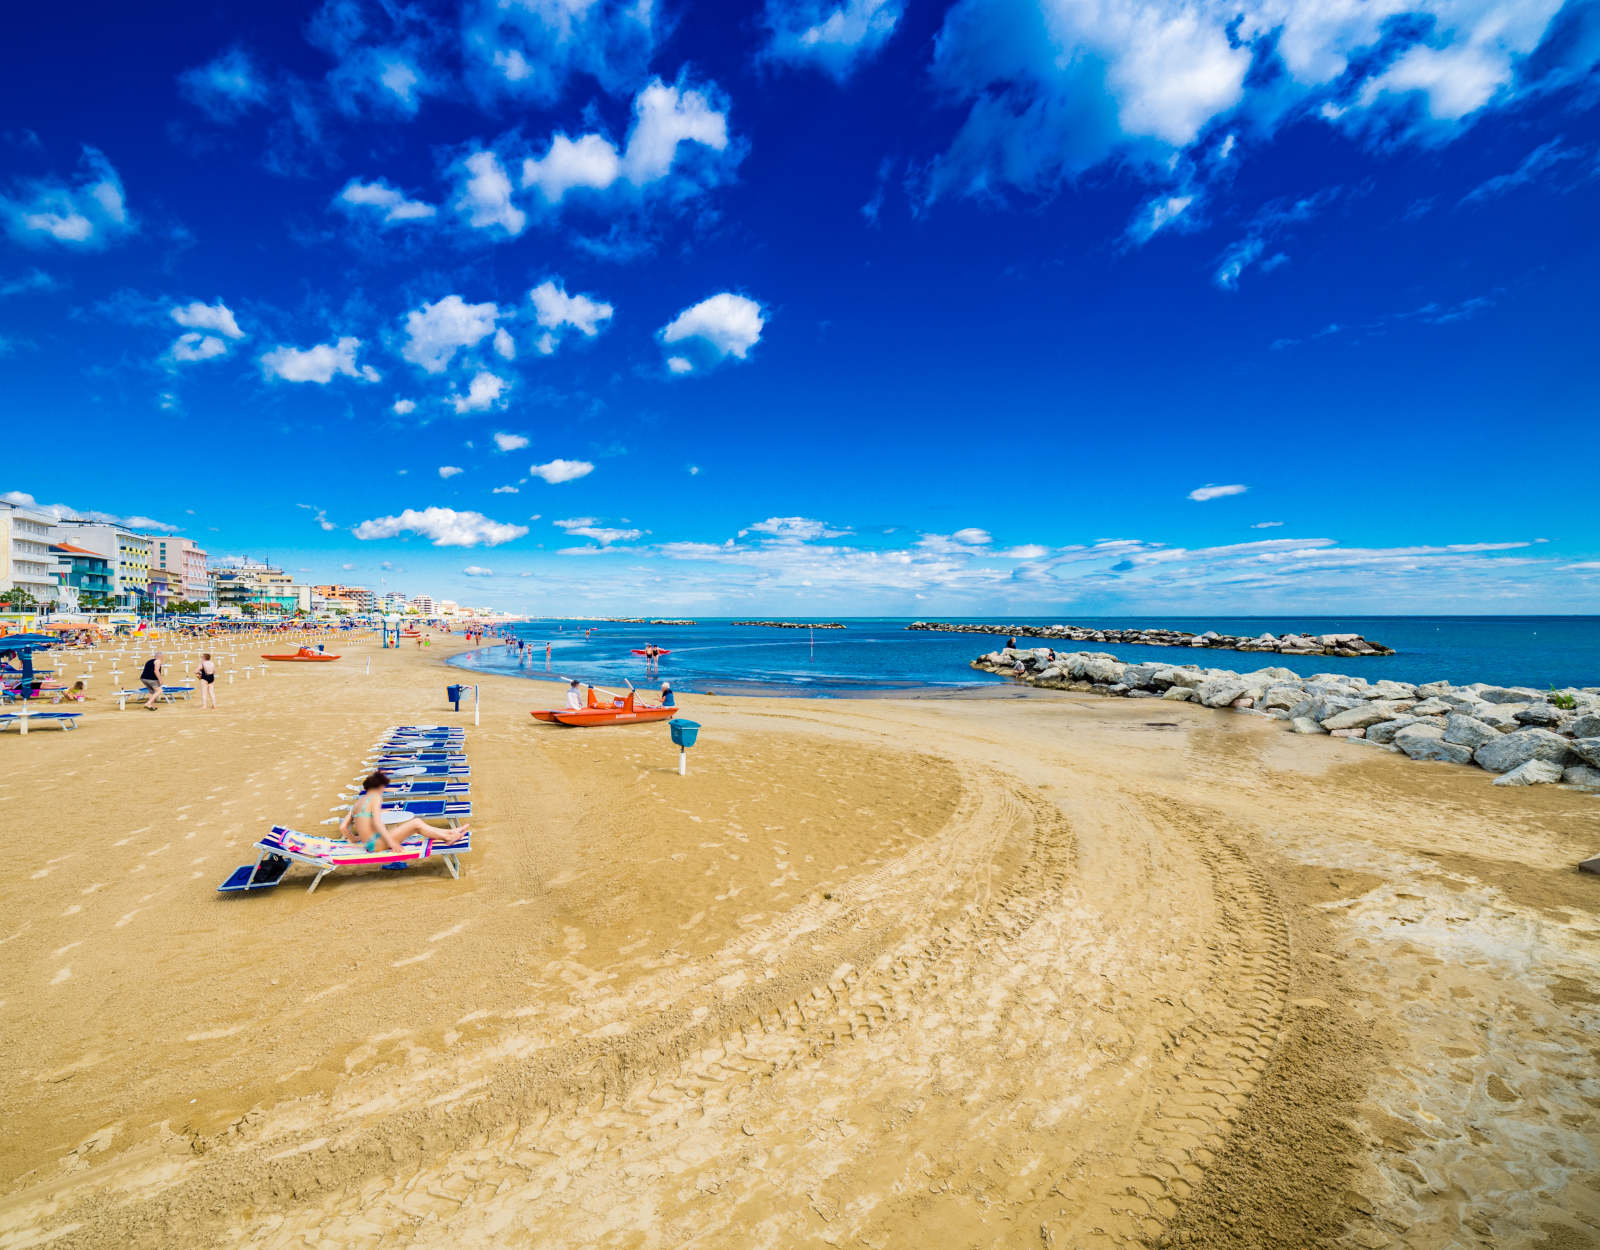 Explore Riviera Romagnola and visit more cities by bus